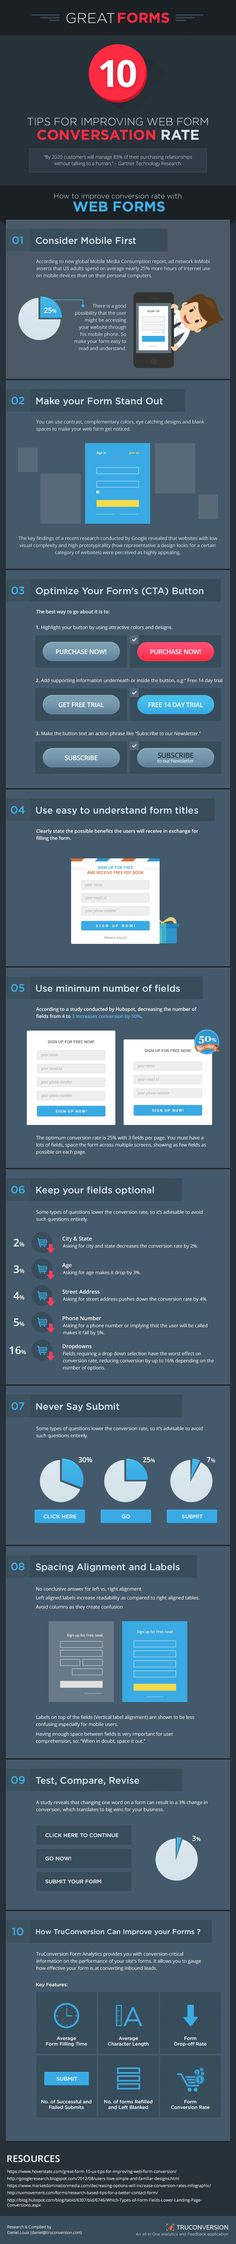 10 Tips to Improve Web Form Design to Boost Conversions #Infographic ~ Visualistan